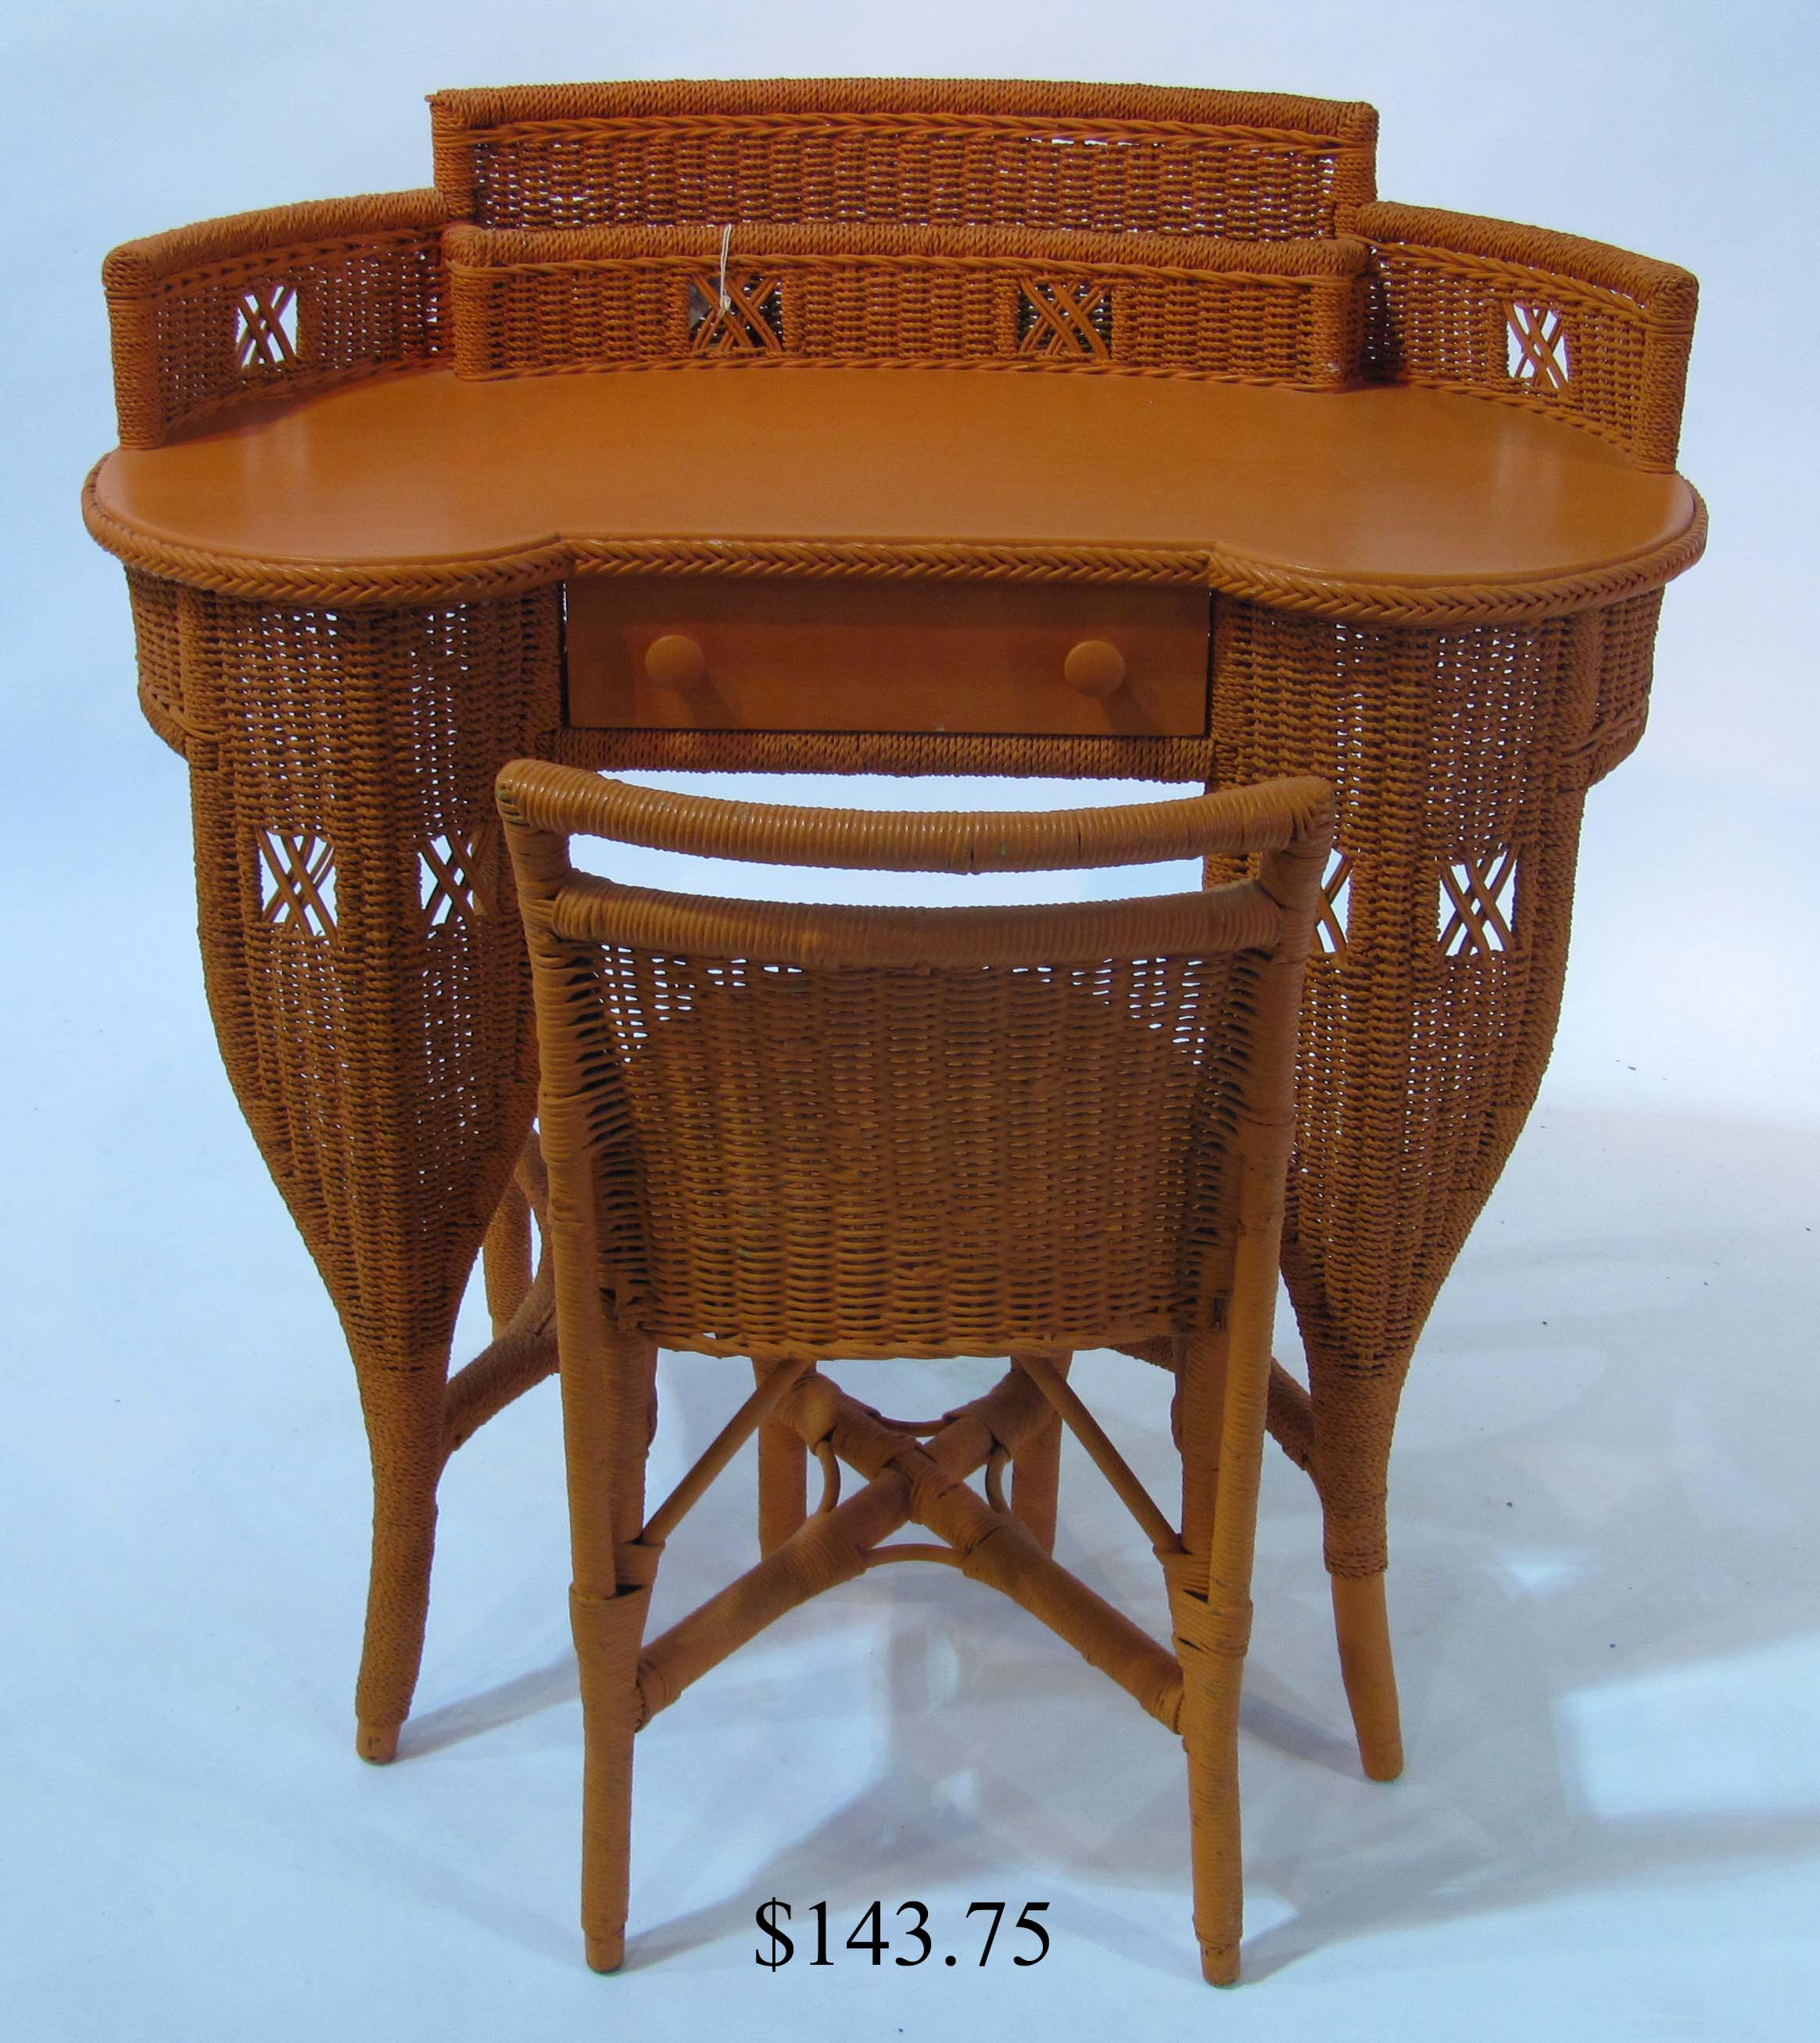 Distinctive Kidney Shaped Wicker Writing Desk And Chair